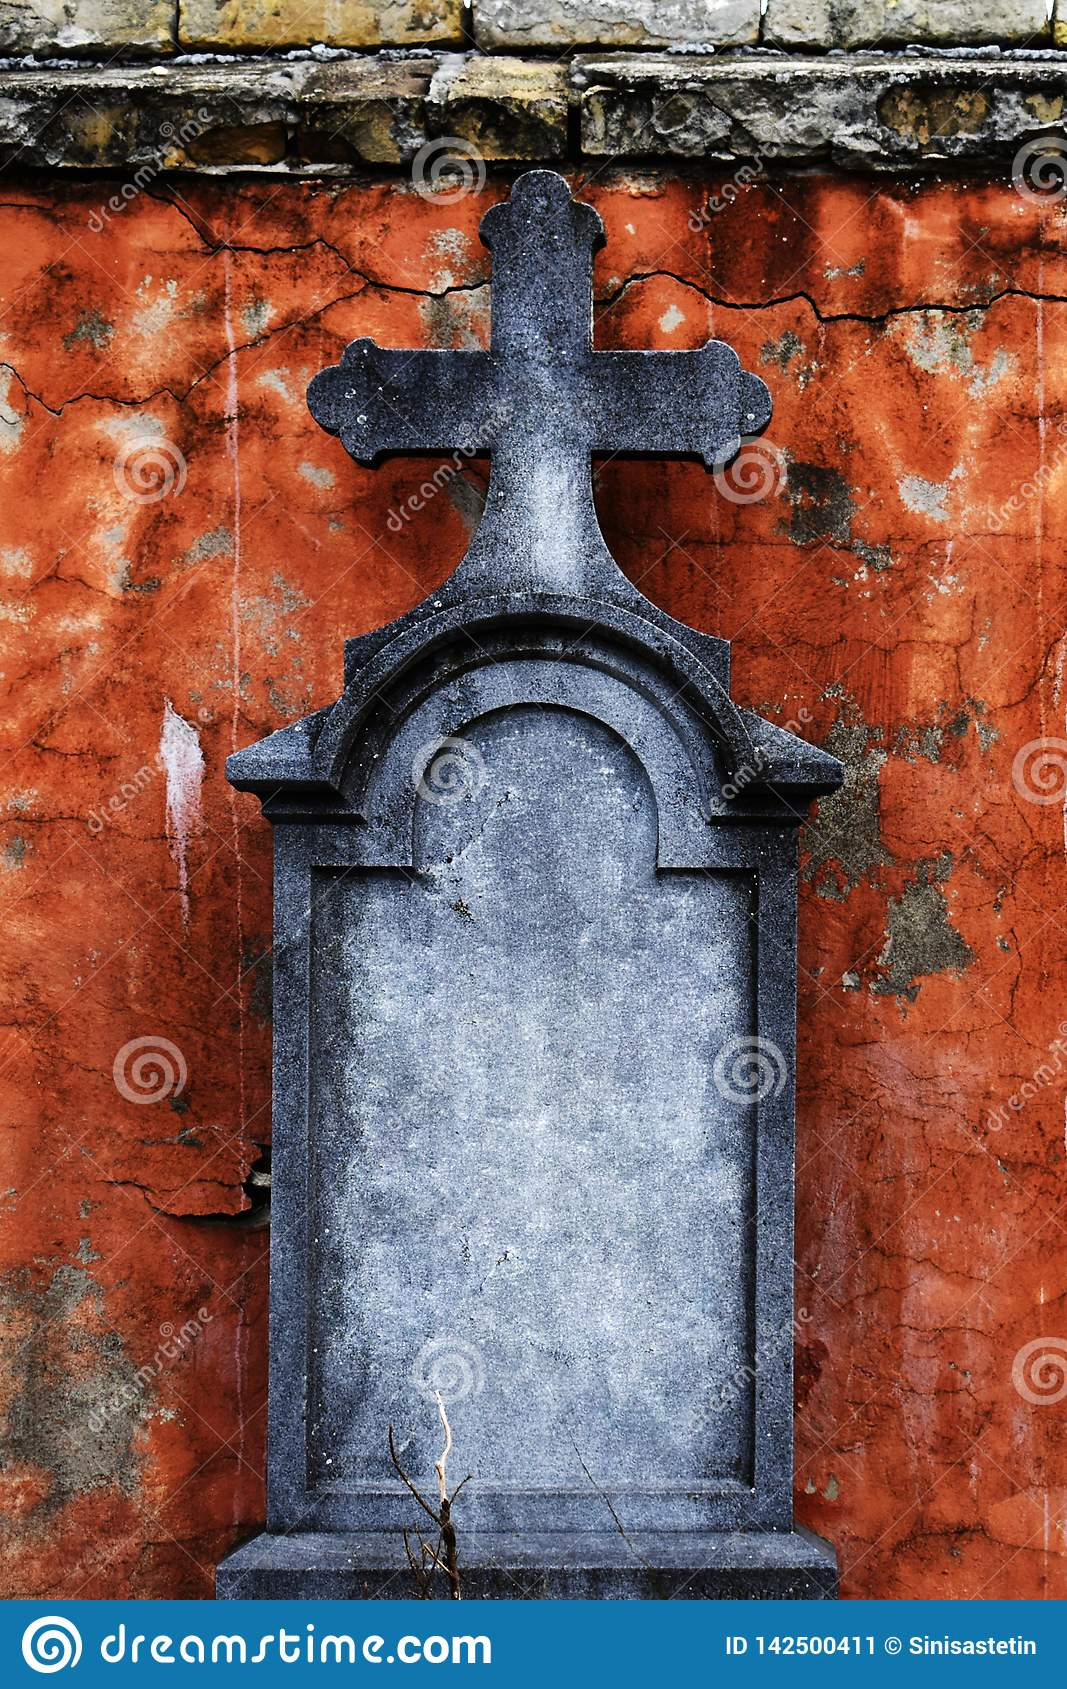 Old gravestone with cross in front of crumbling facade